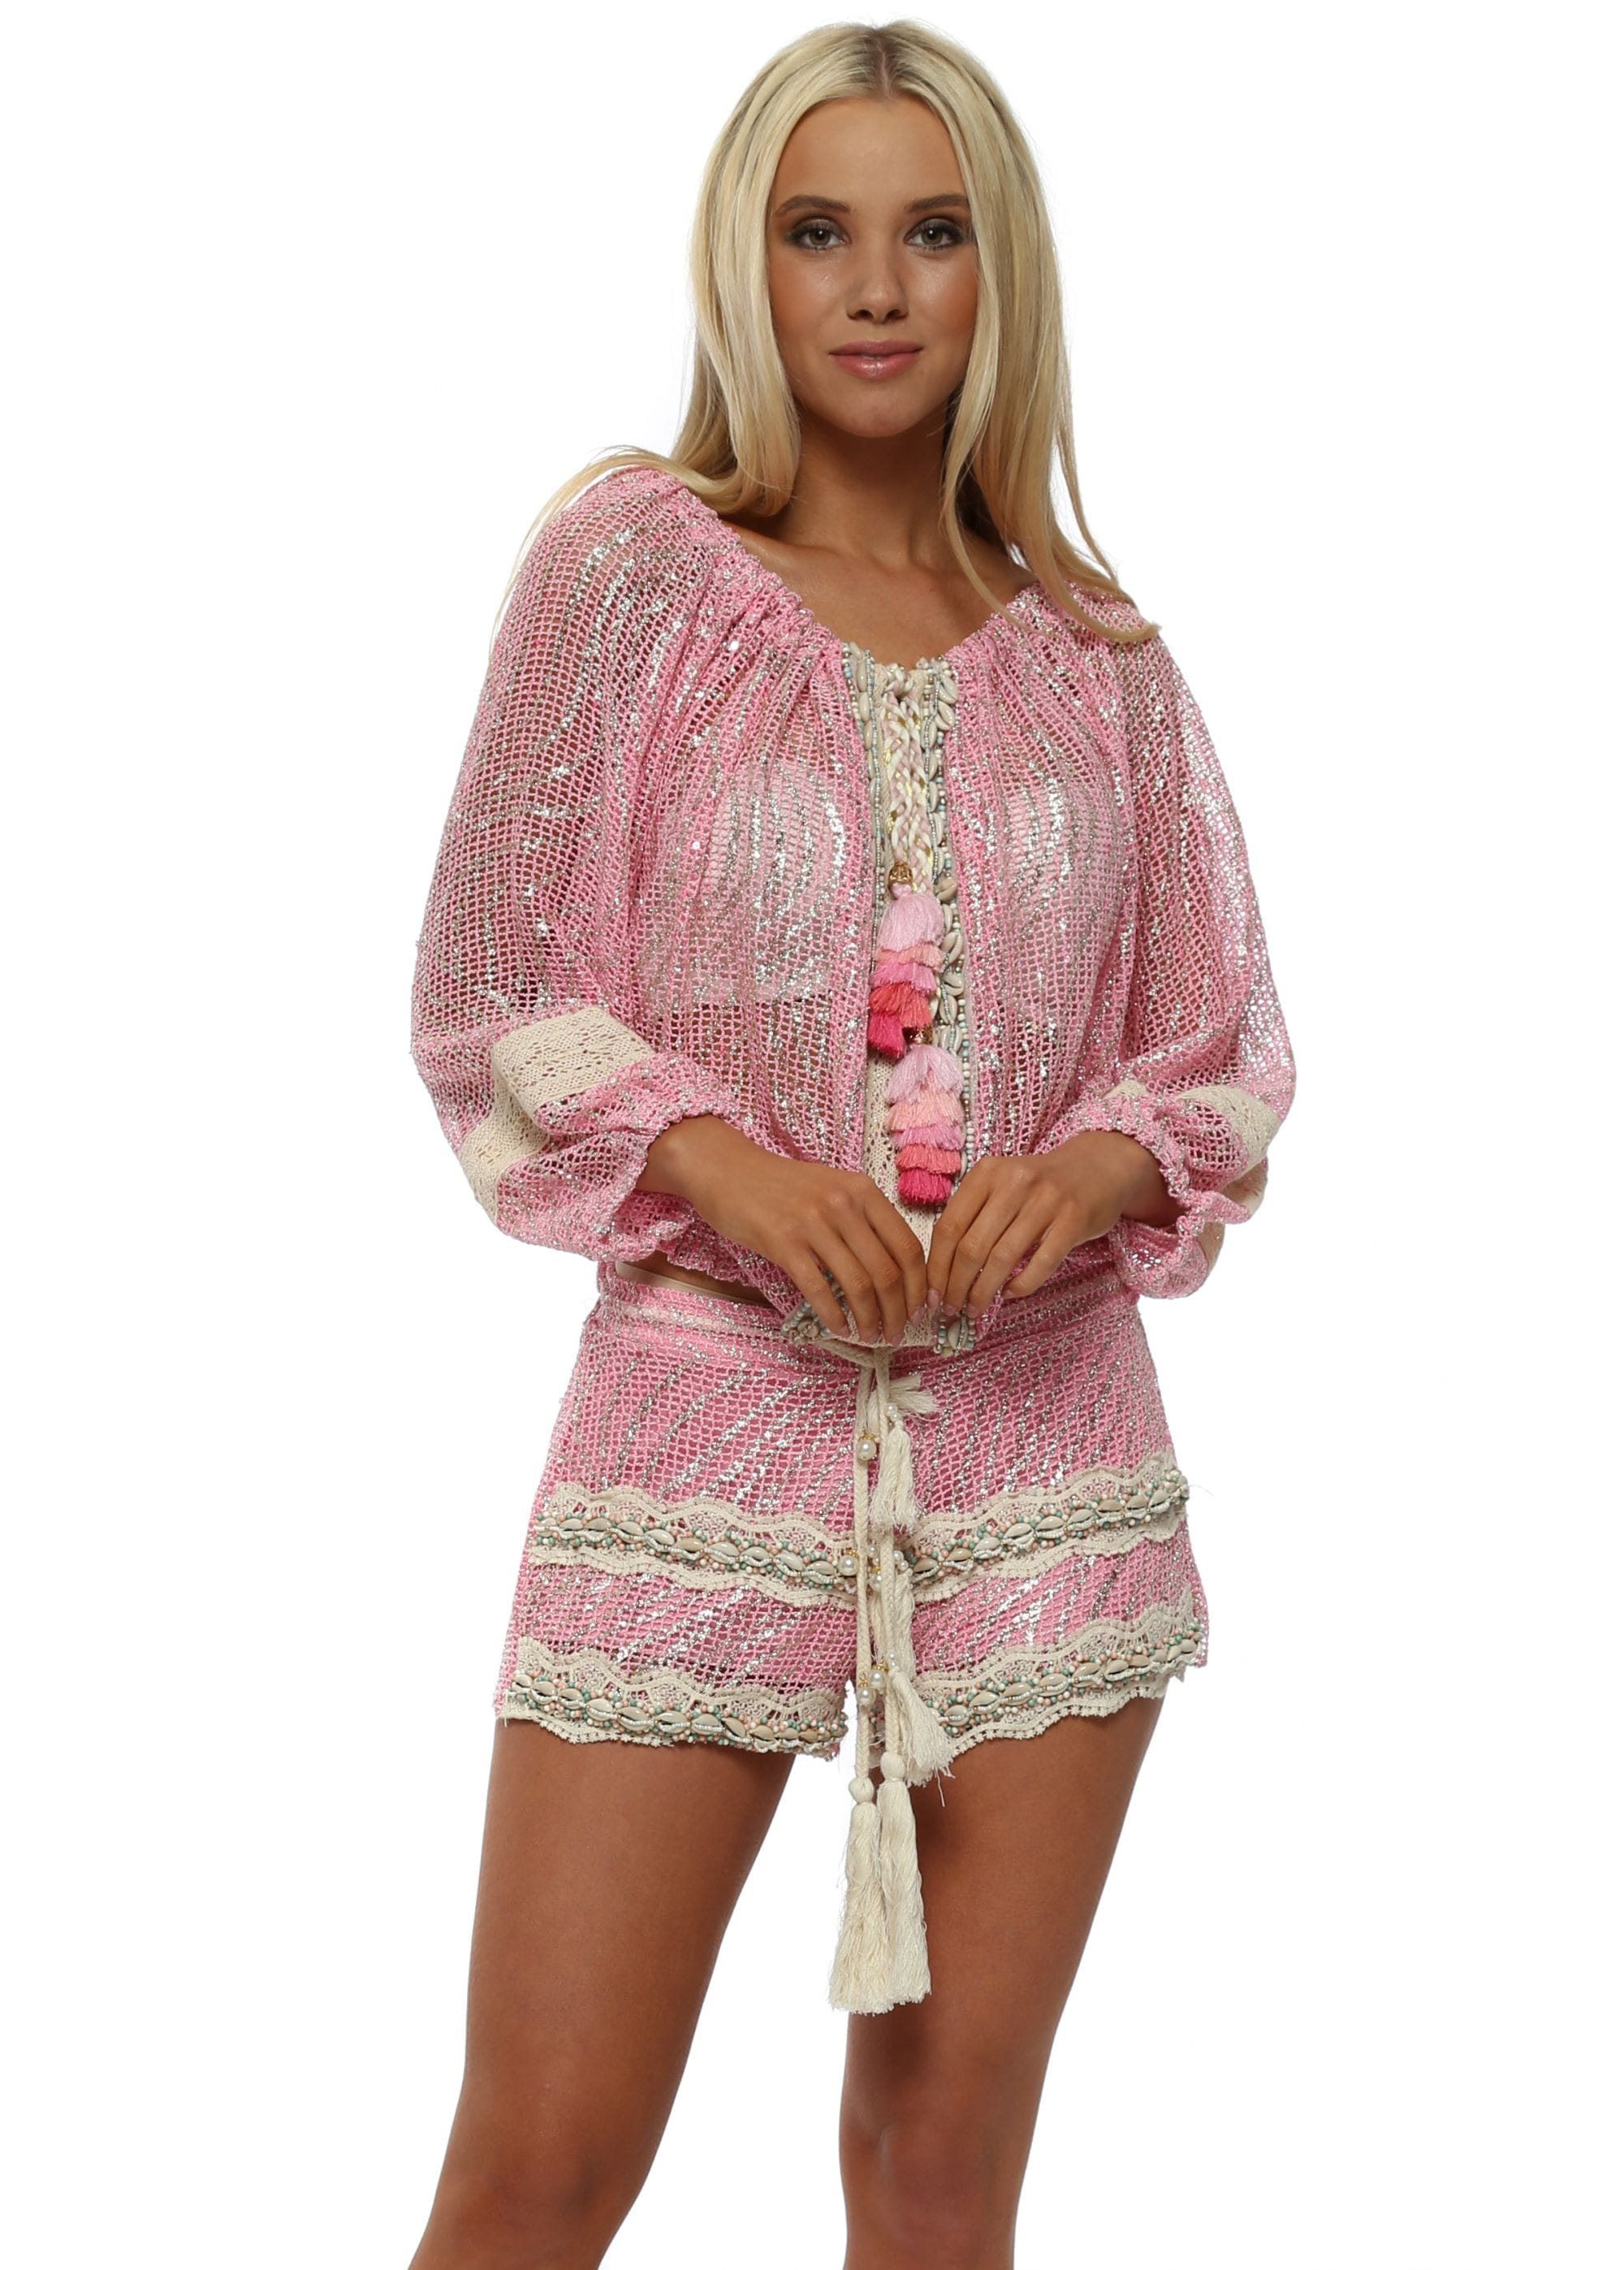 eaa21d6e6177 Pink Metallic Knit Tassel Shorts by Laurie   Joe